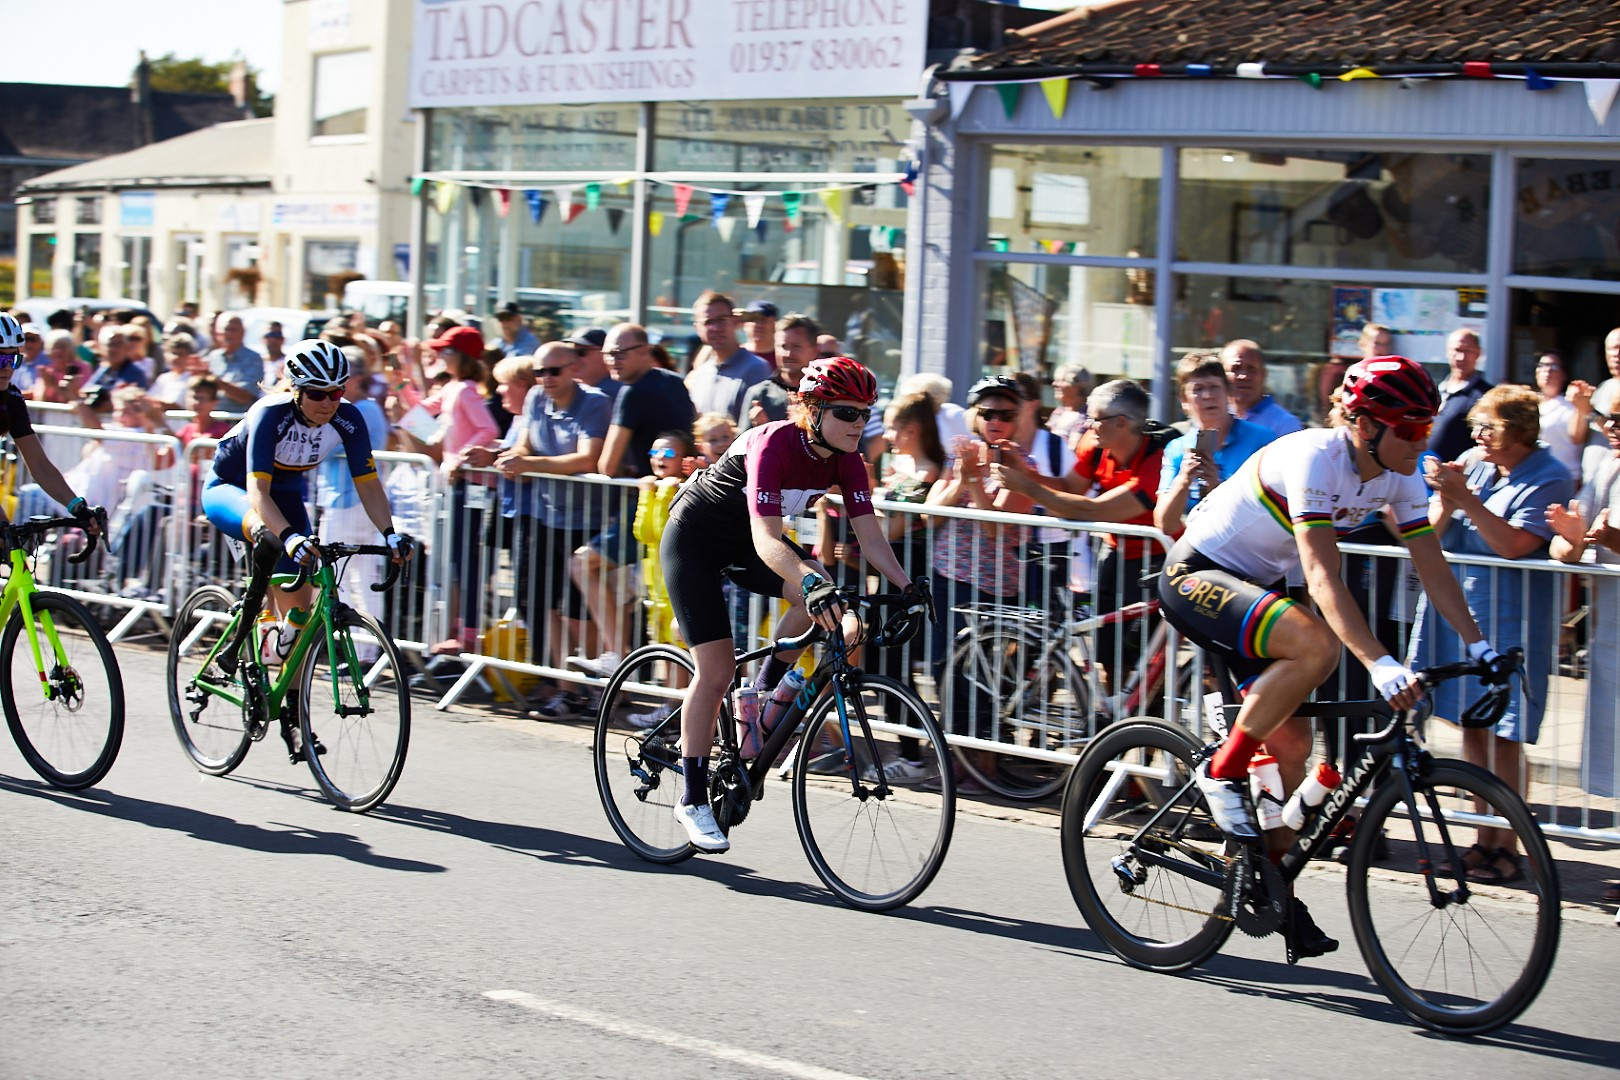 cyclists going past crowd